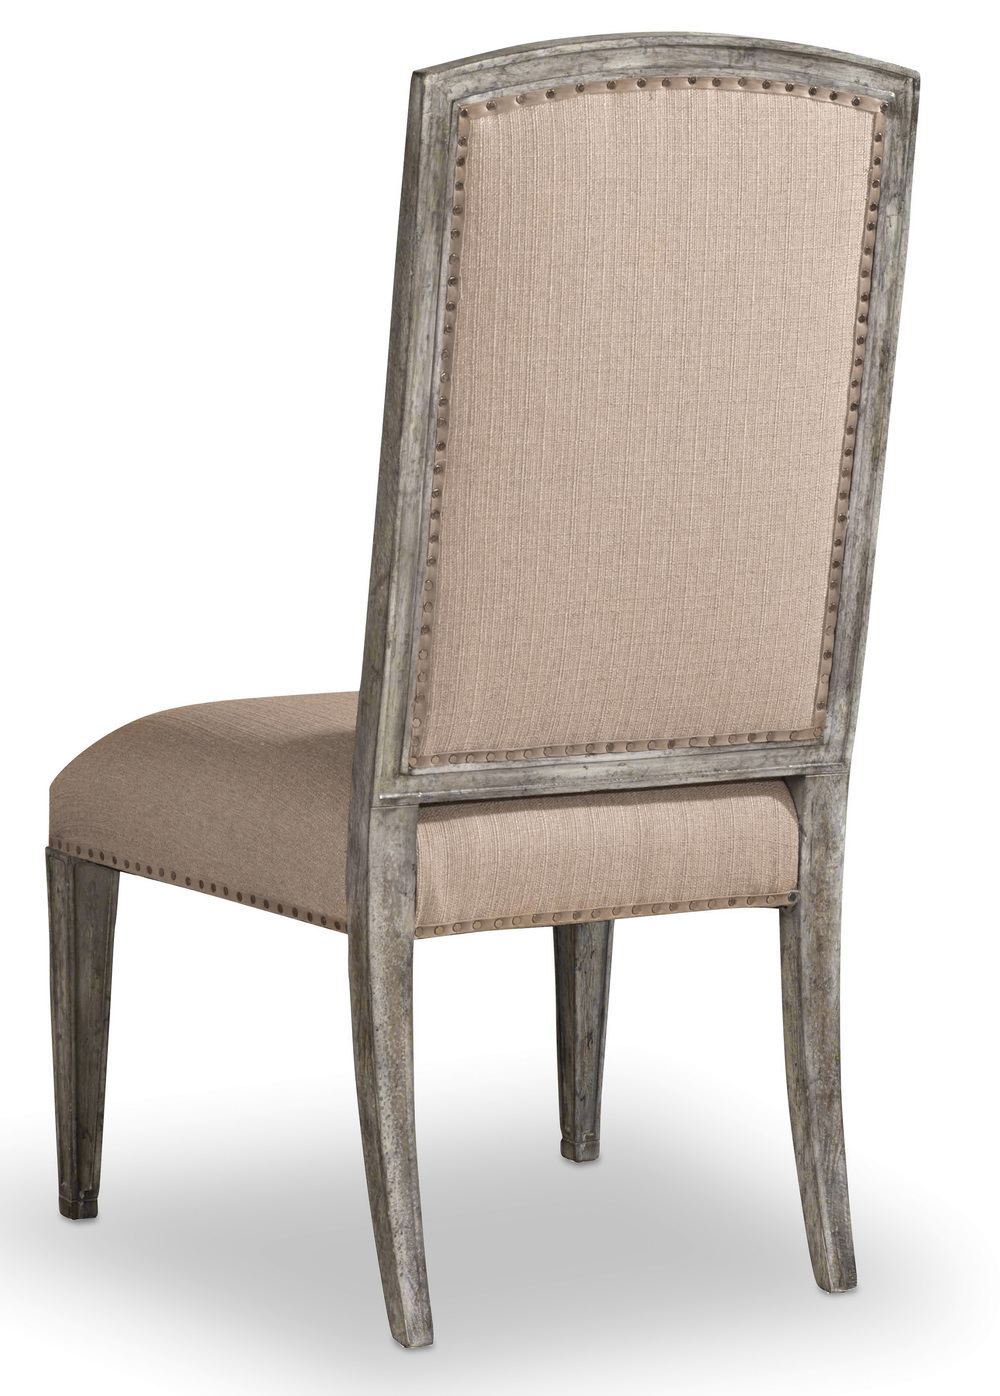 HOOKER FURNITURE CO - True Vintage Upholstered Side Chair